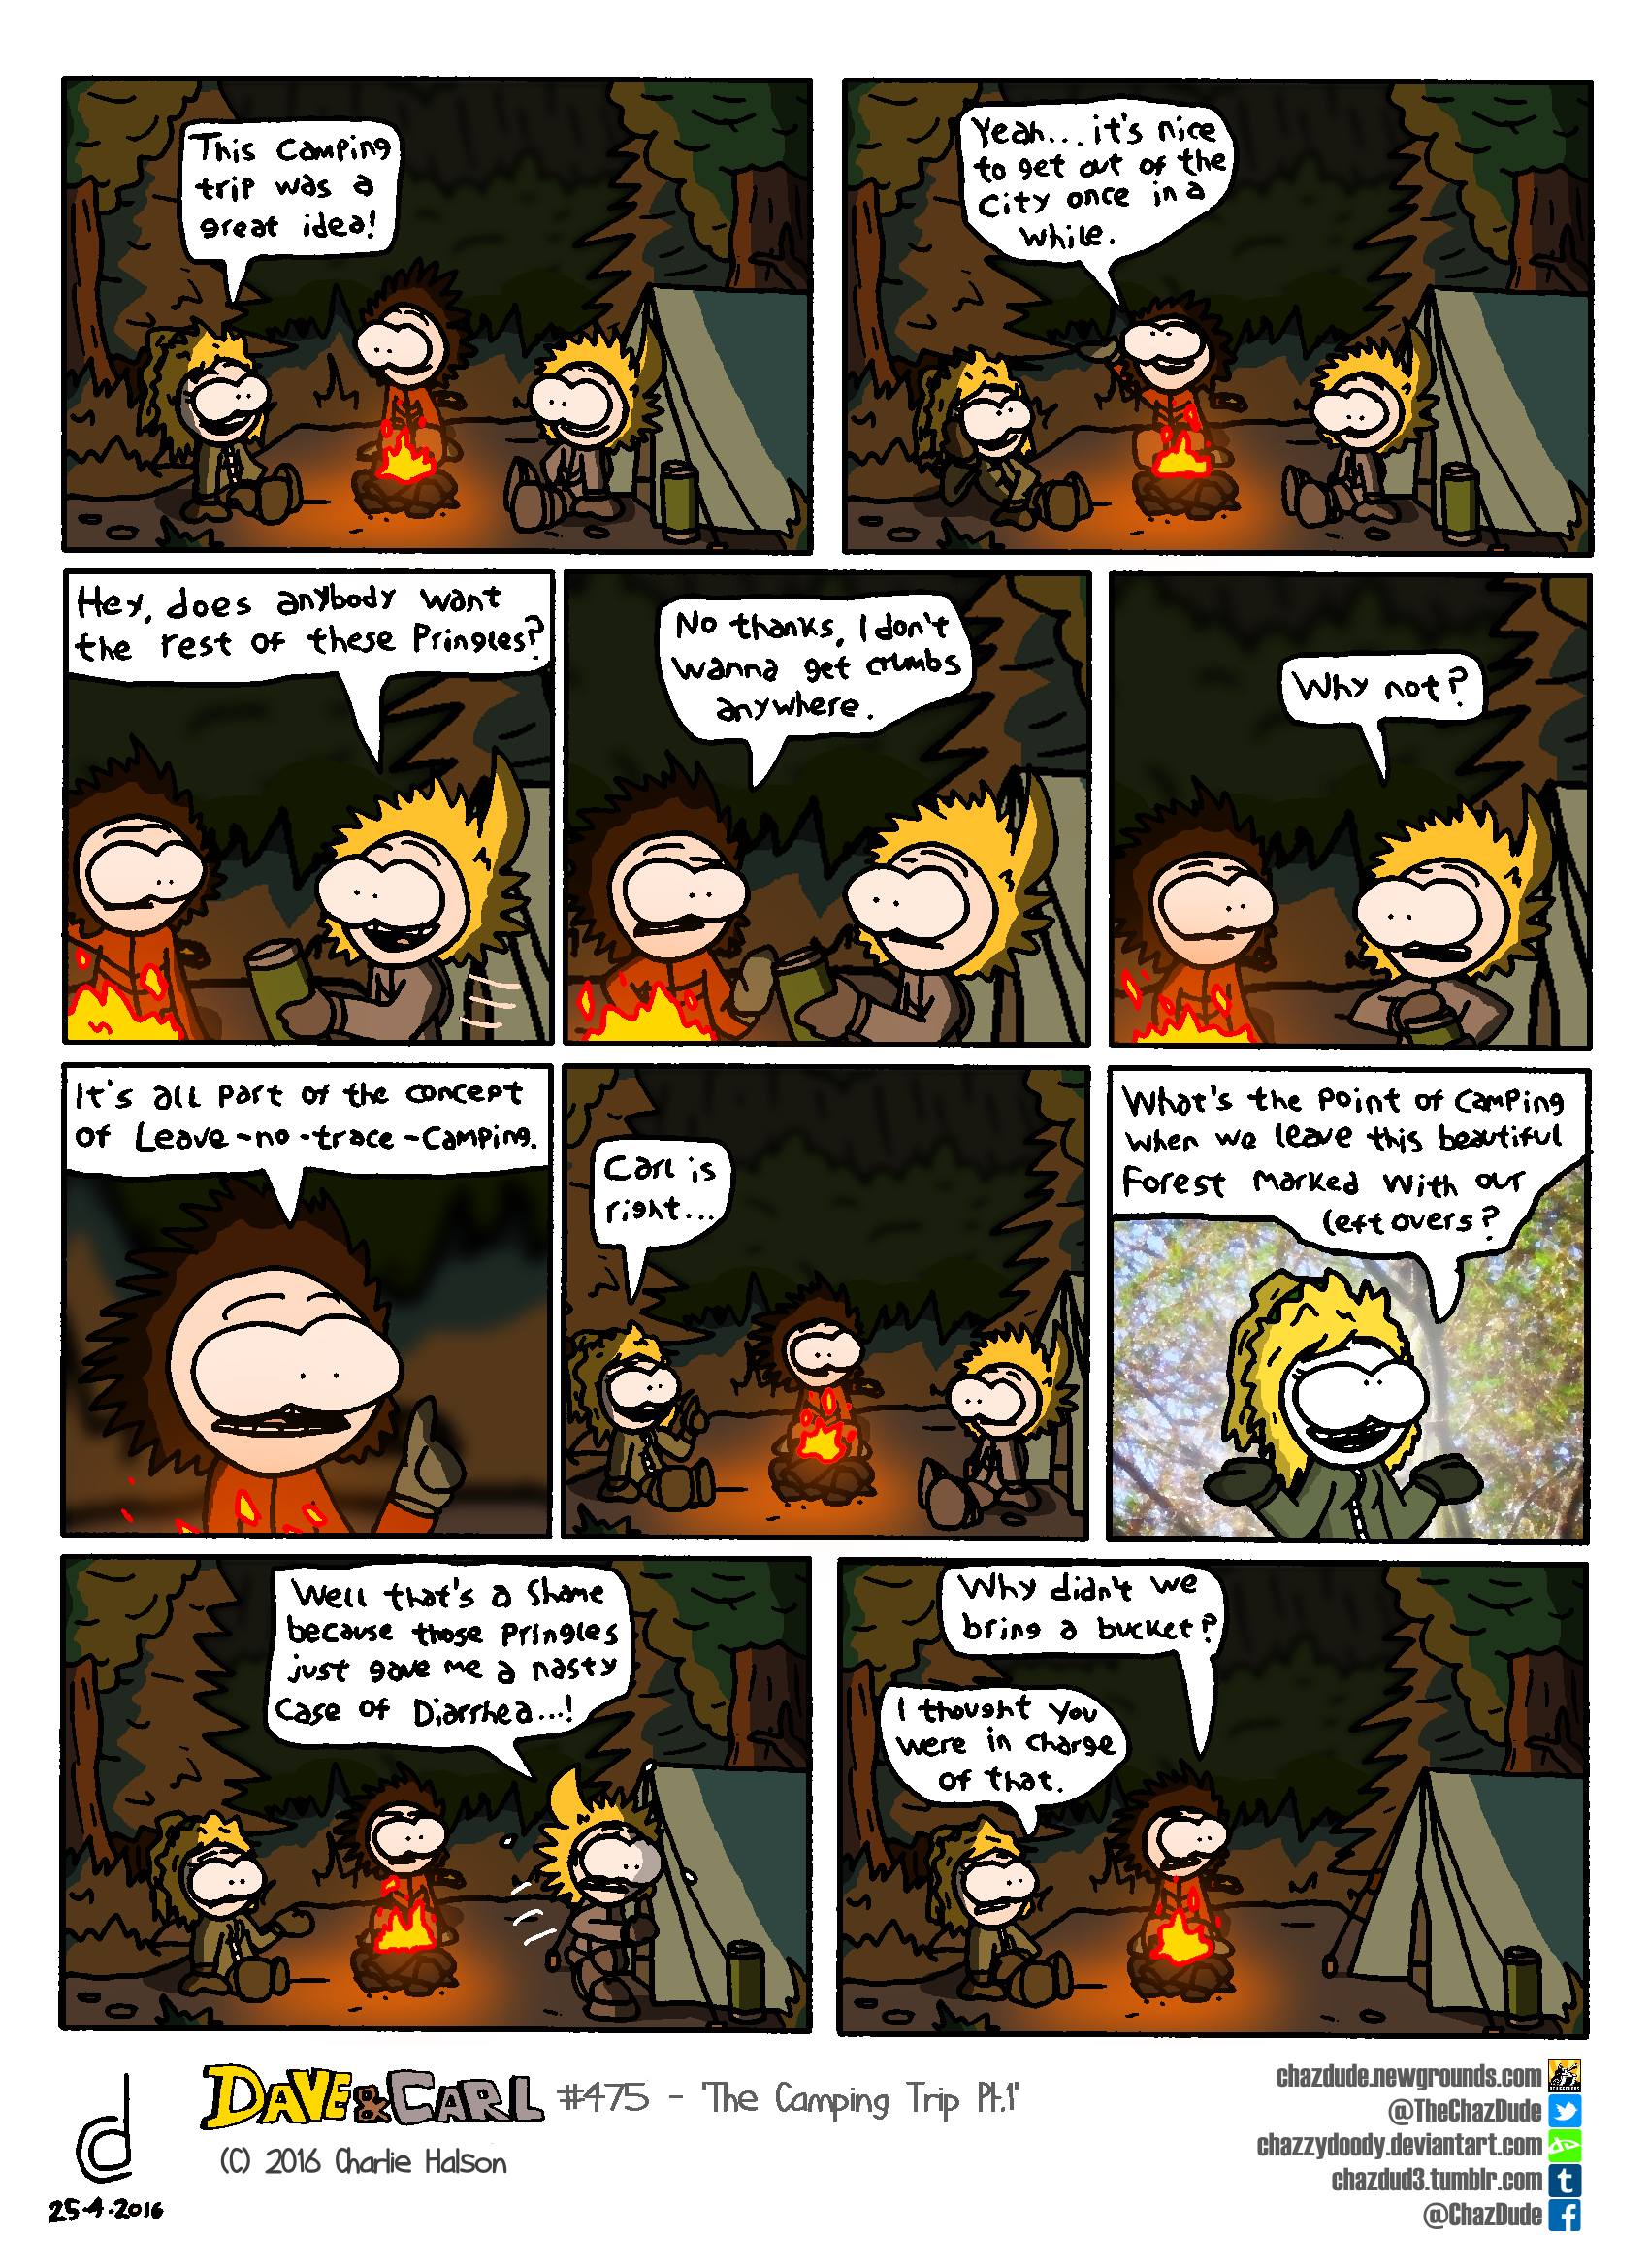 The Camping Trip Pt.1